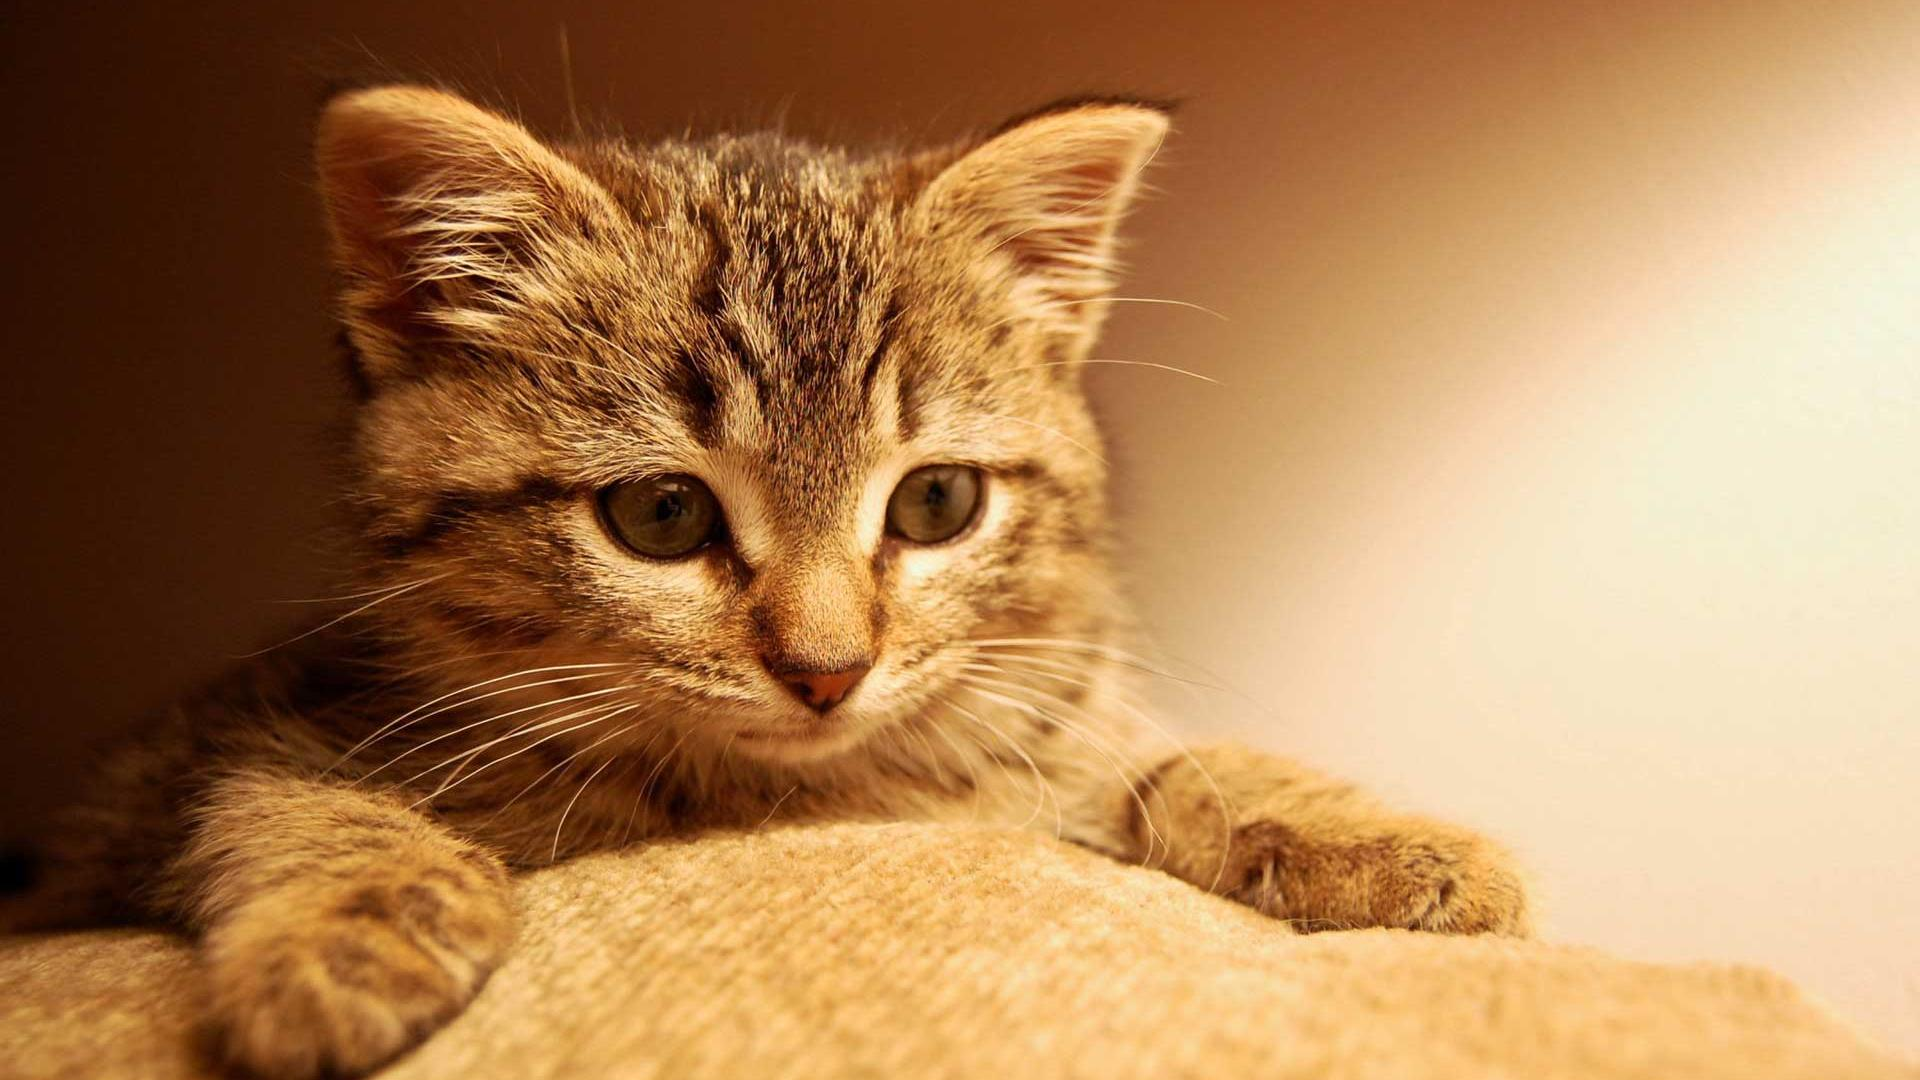 Cute Kitten wallpaper   611618 1920x1080